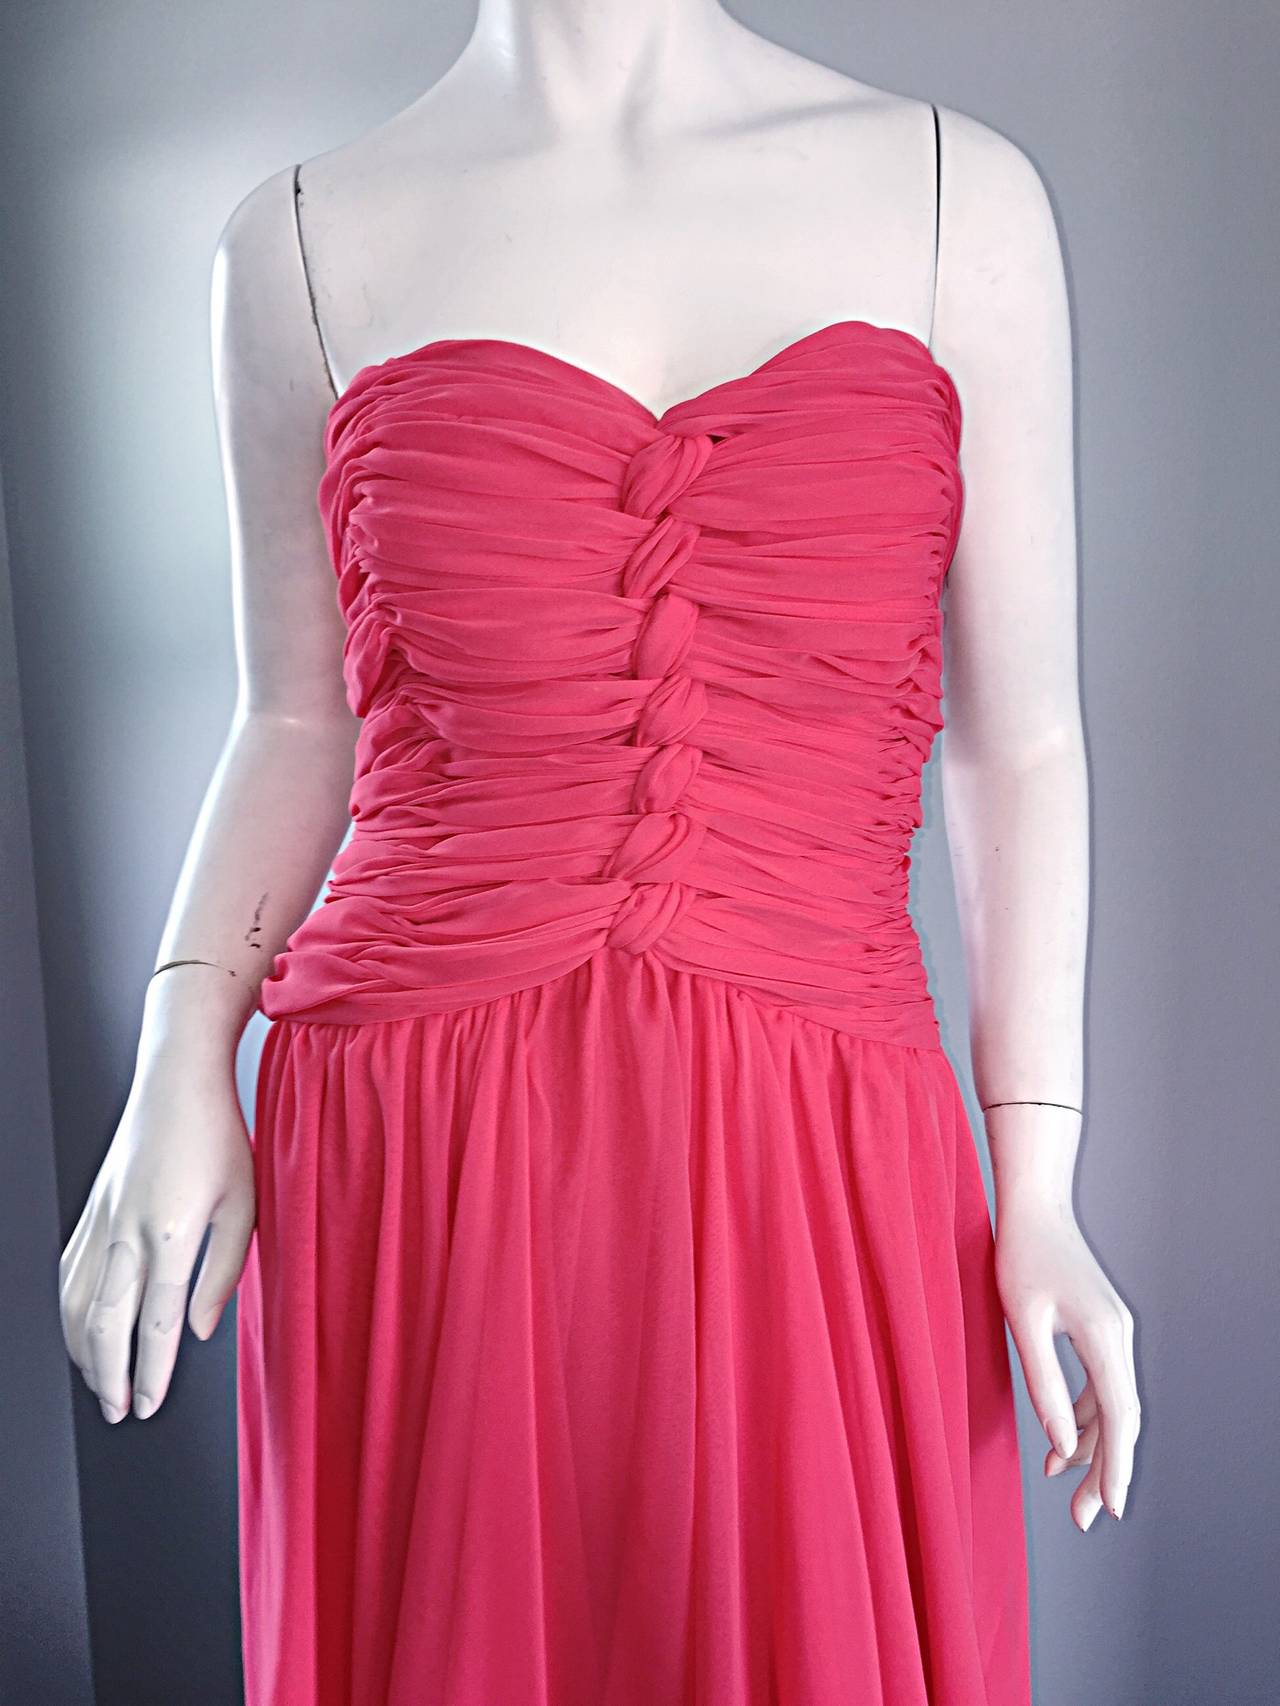 Victor Costa Coral Pink Strapless Flowy Knotted Vintage Cocktail Dress Size 8 10 For Sale 2